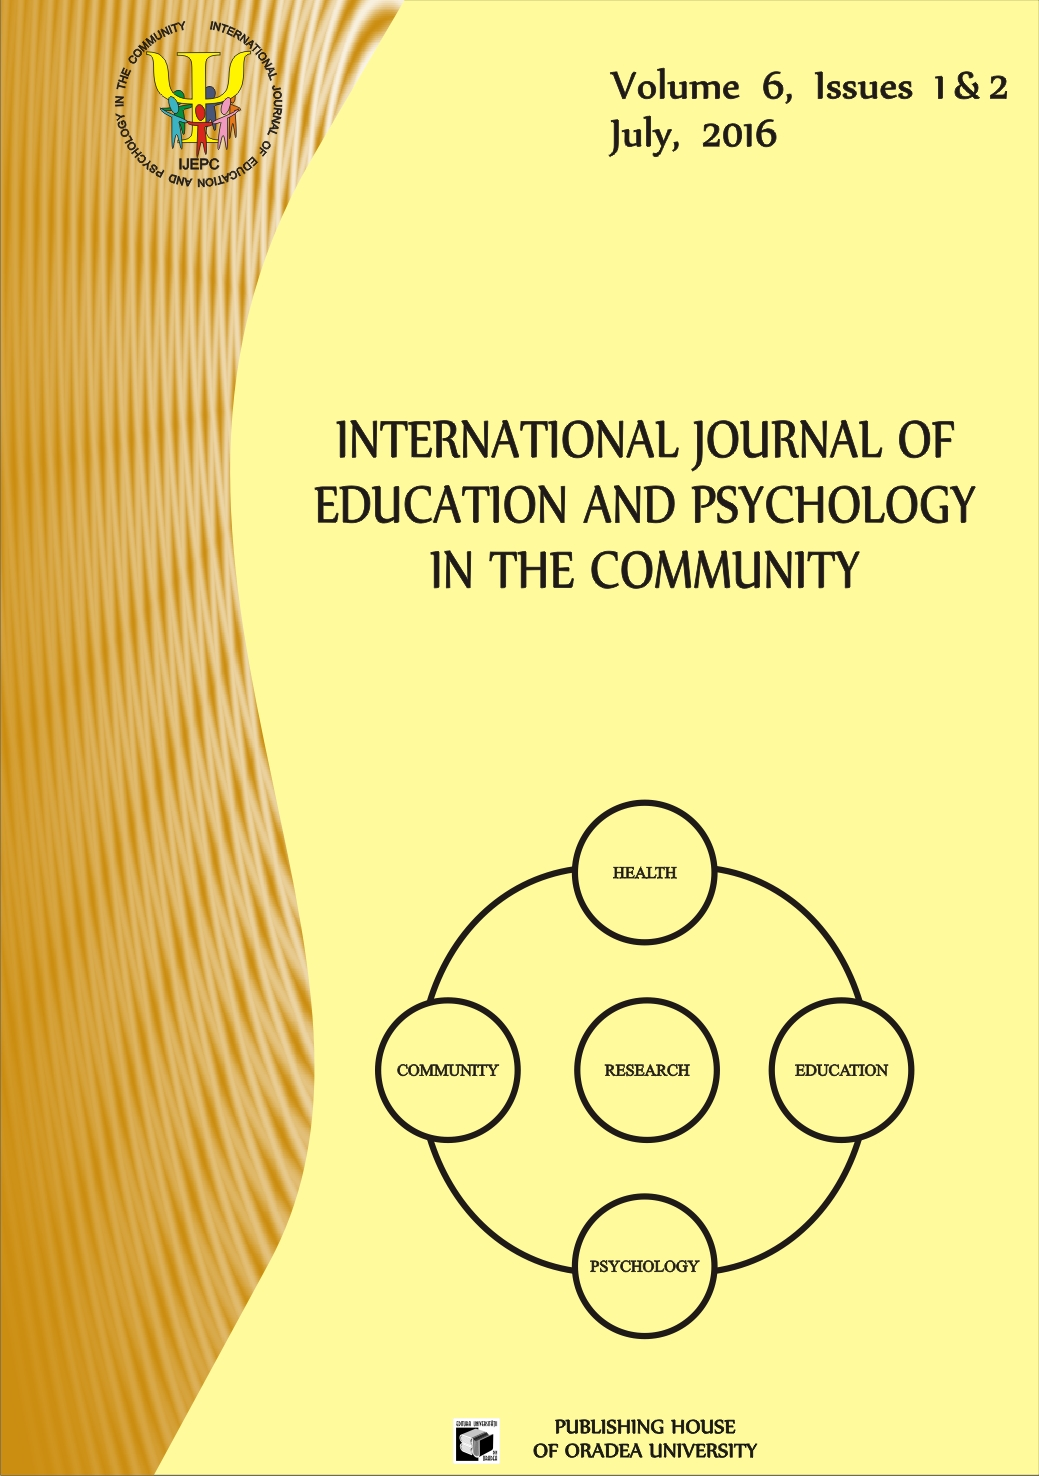 International Journal of Education and Psychology in the Community (IJEPC)